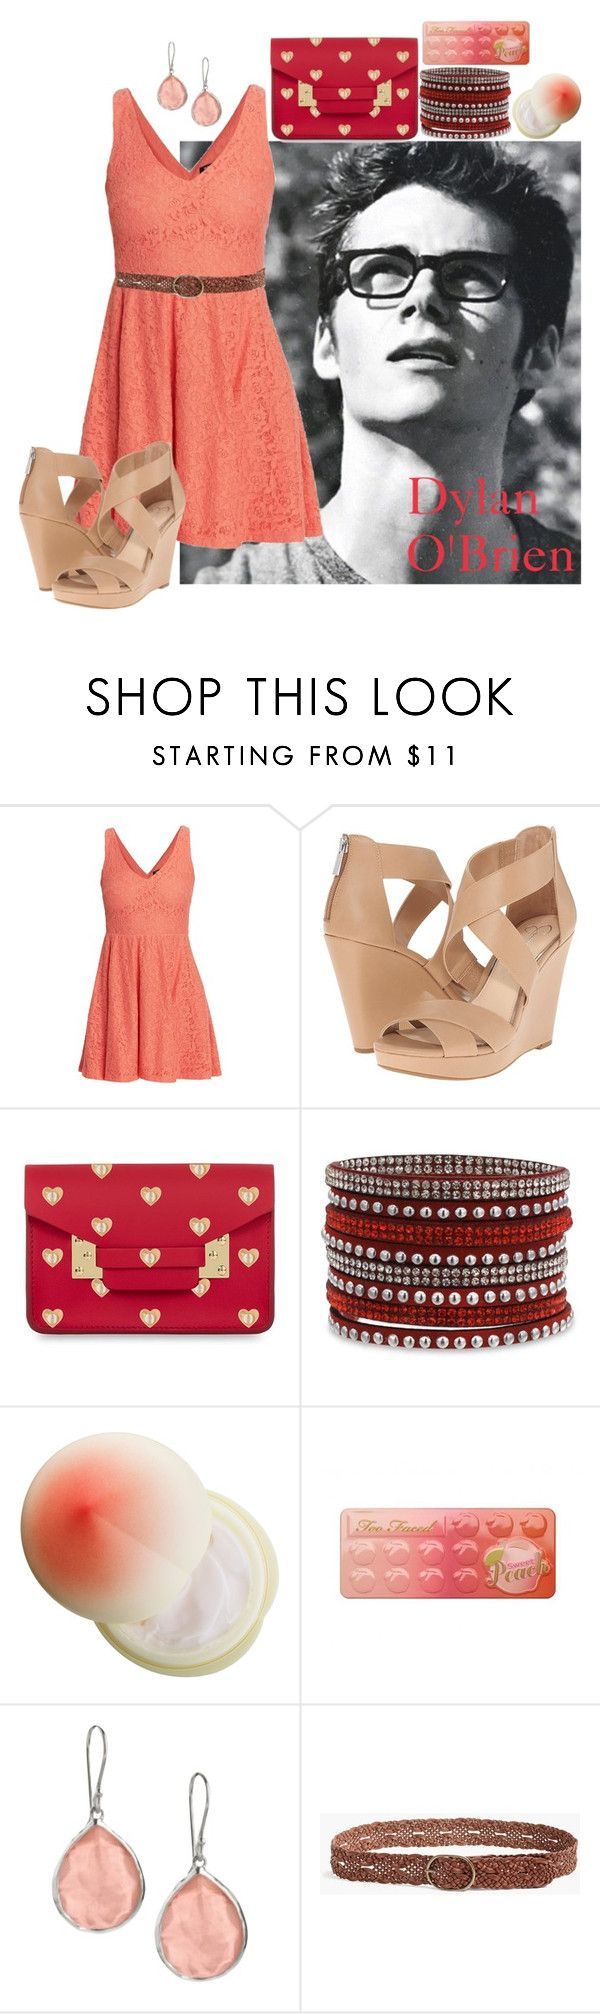 """""""Dylan O'Brien"""" by yosei-no-megami ❤ liked on Polyvore featuring Morgan, Jessica Simpson, Sophie Hulme, Tony Moly, Too Faced Cosmetics, Ippolita, Lucky Brand, peach, blackandwhite and TeenWolf"""